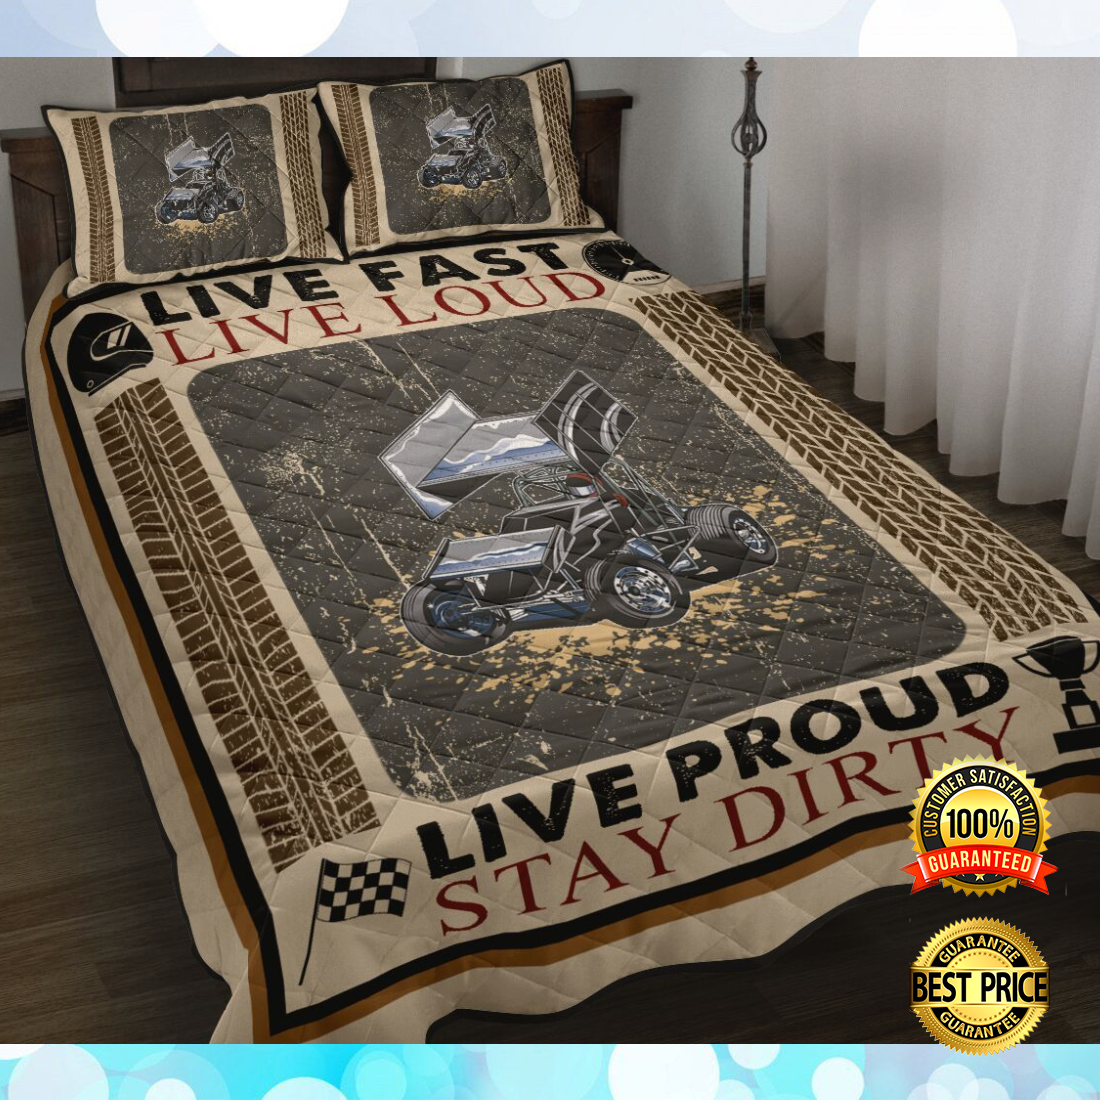 Live fast live loud live proud stay dirty bedding set 5